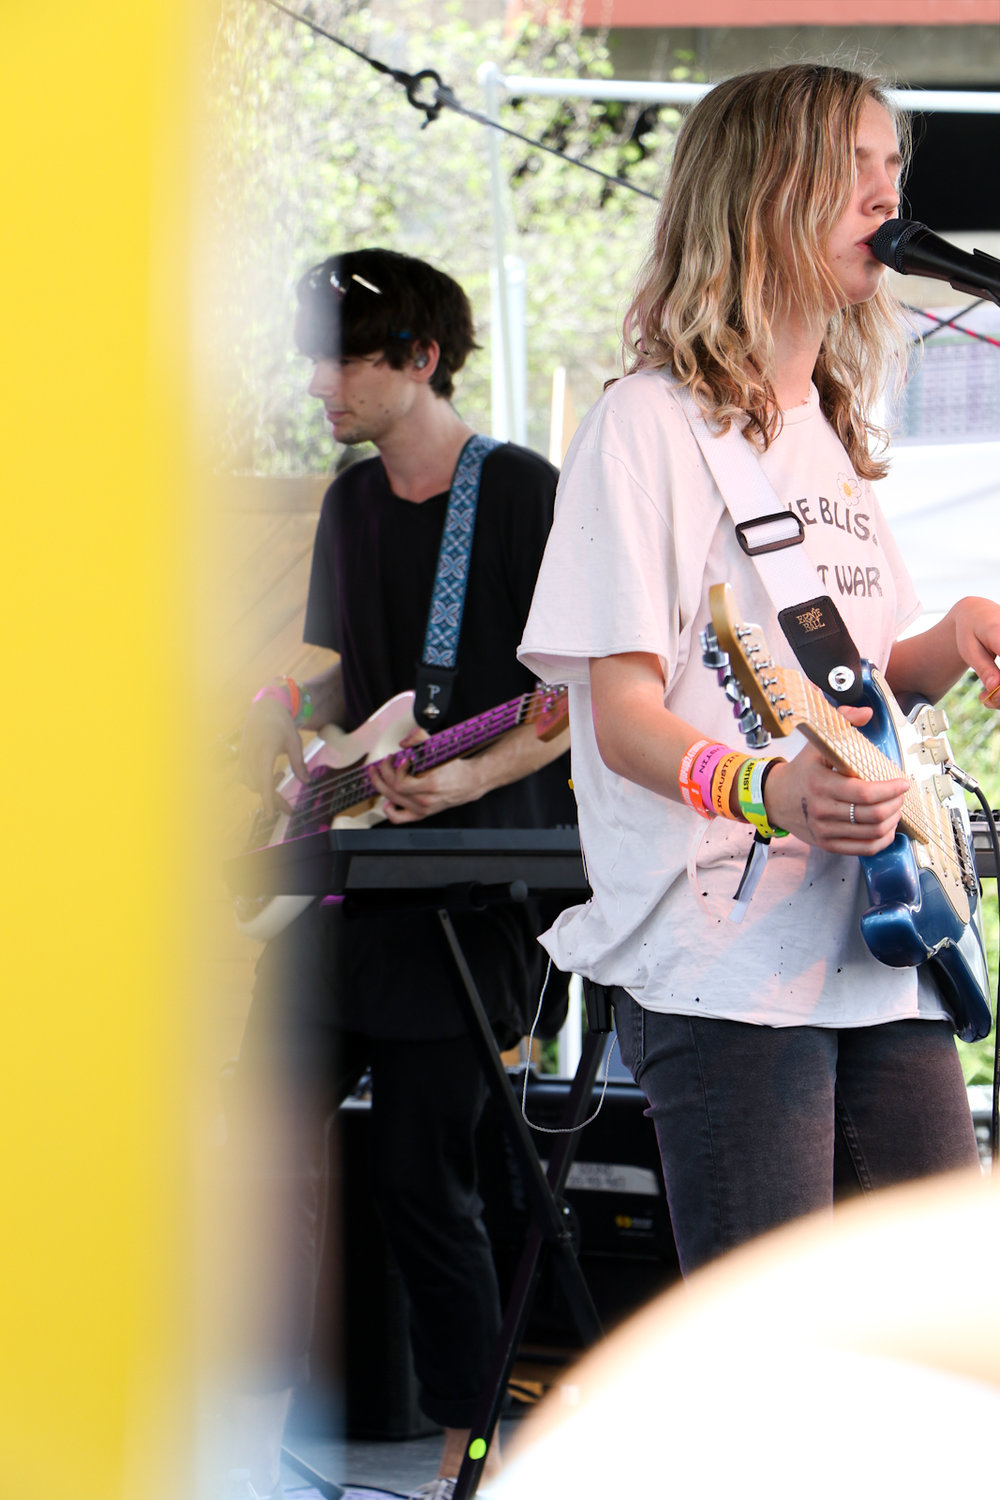 One of The Japanese House's shows took place at Urban Outfitter's Space 24 Twenty.